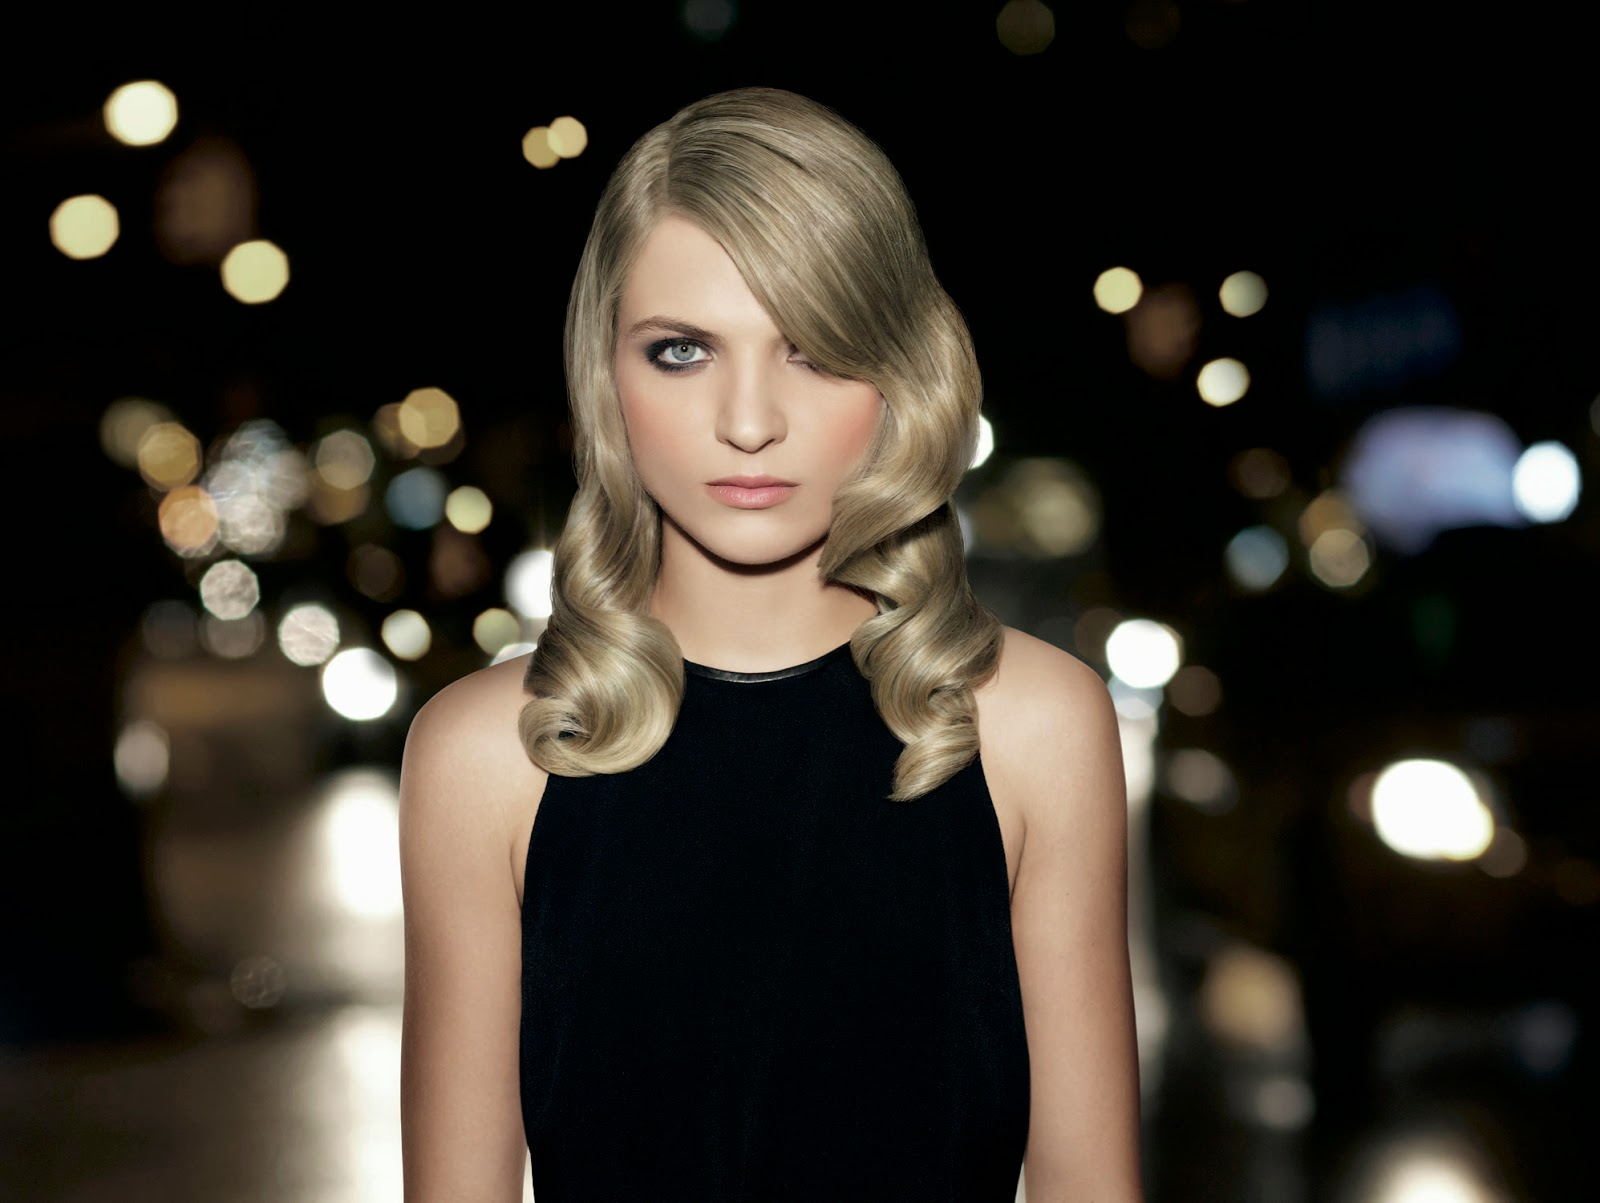 Hair Trends: Redken Artists' Favorite Hot Tips for Blondes this Summer